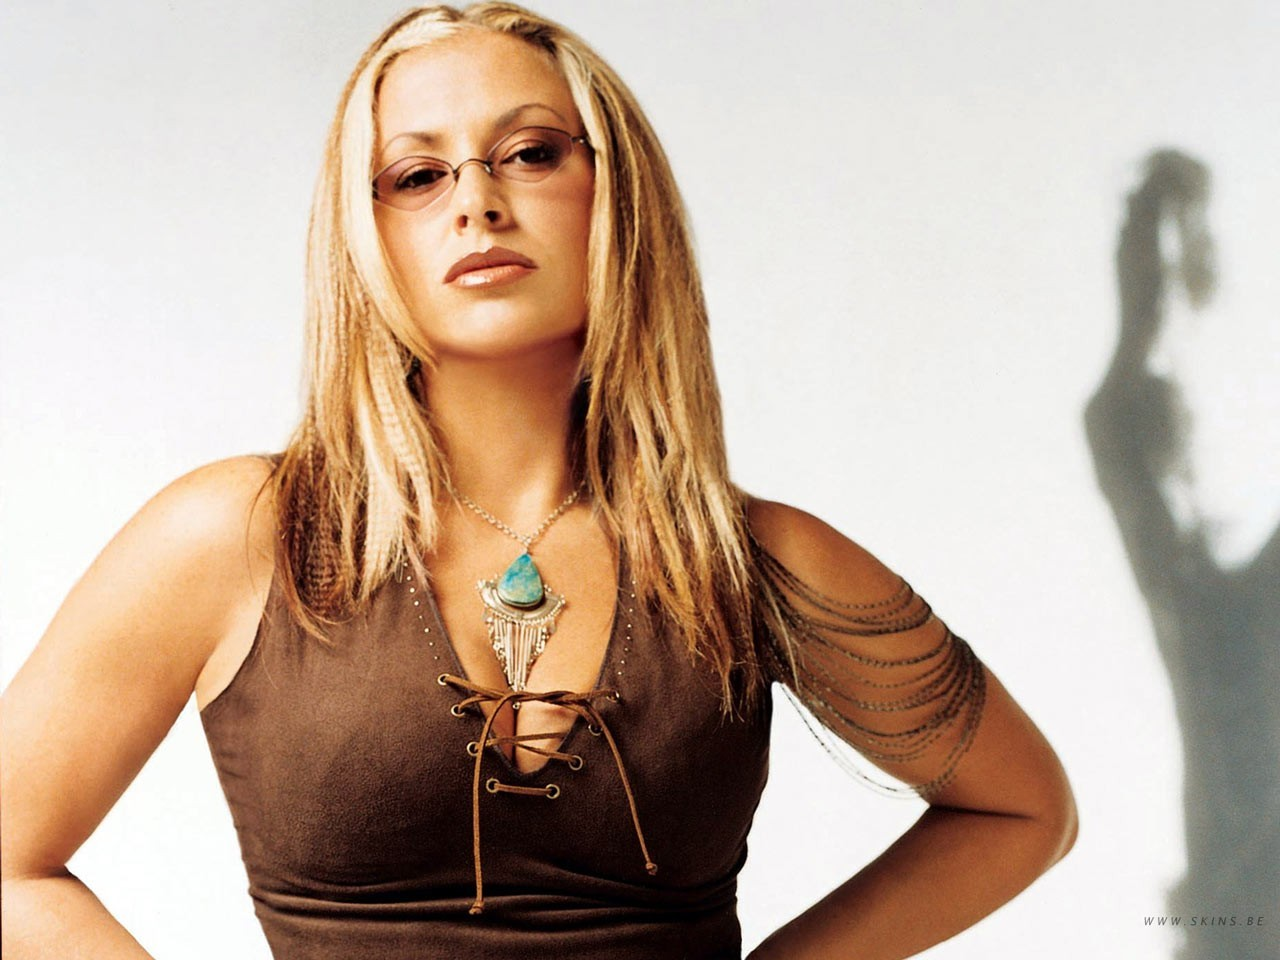 Anastacia nudes (41 foto and video), Tits, Leaked, Instagram, braless 2019